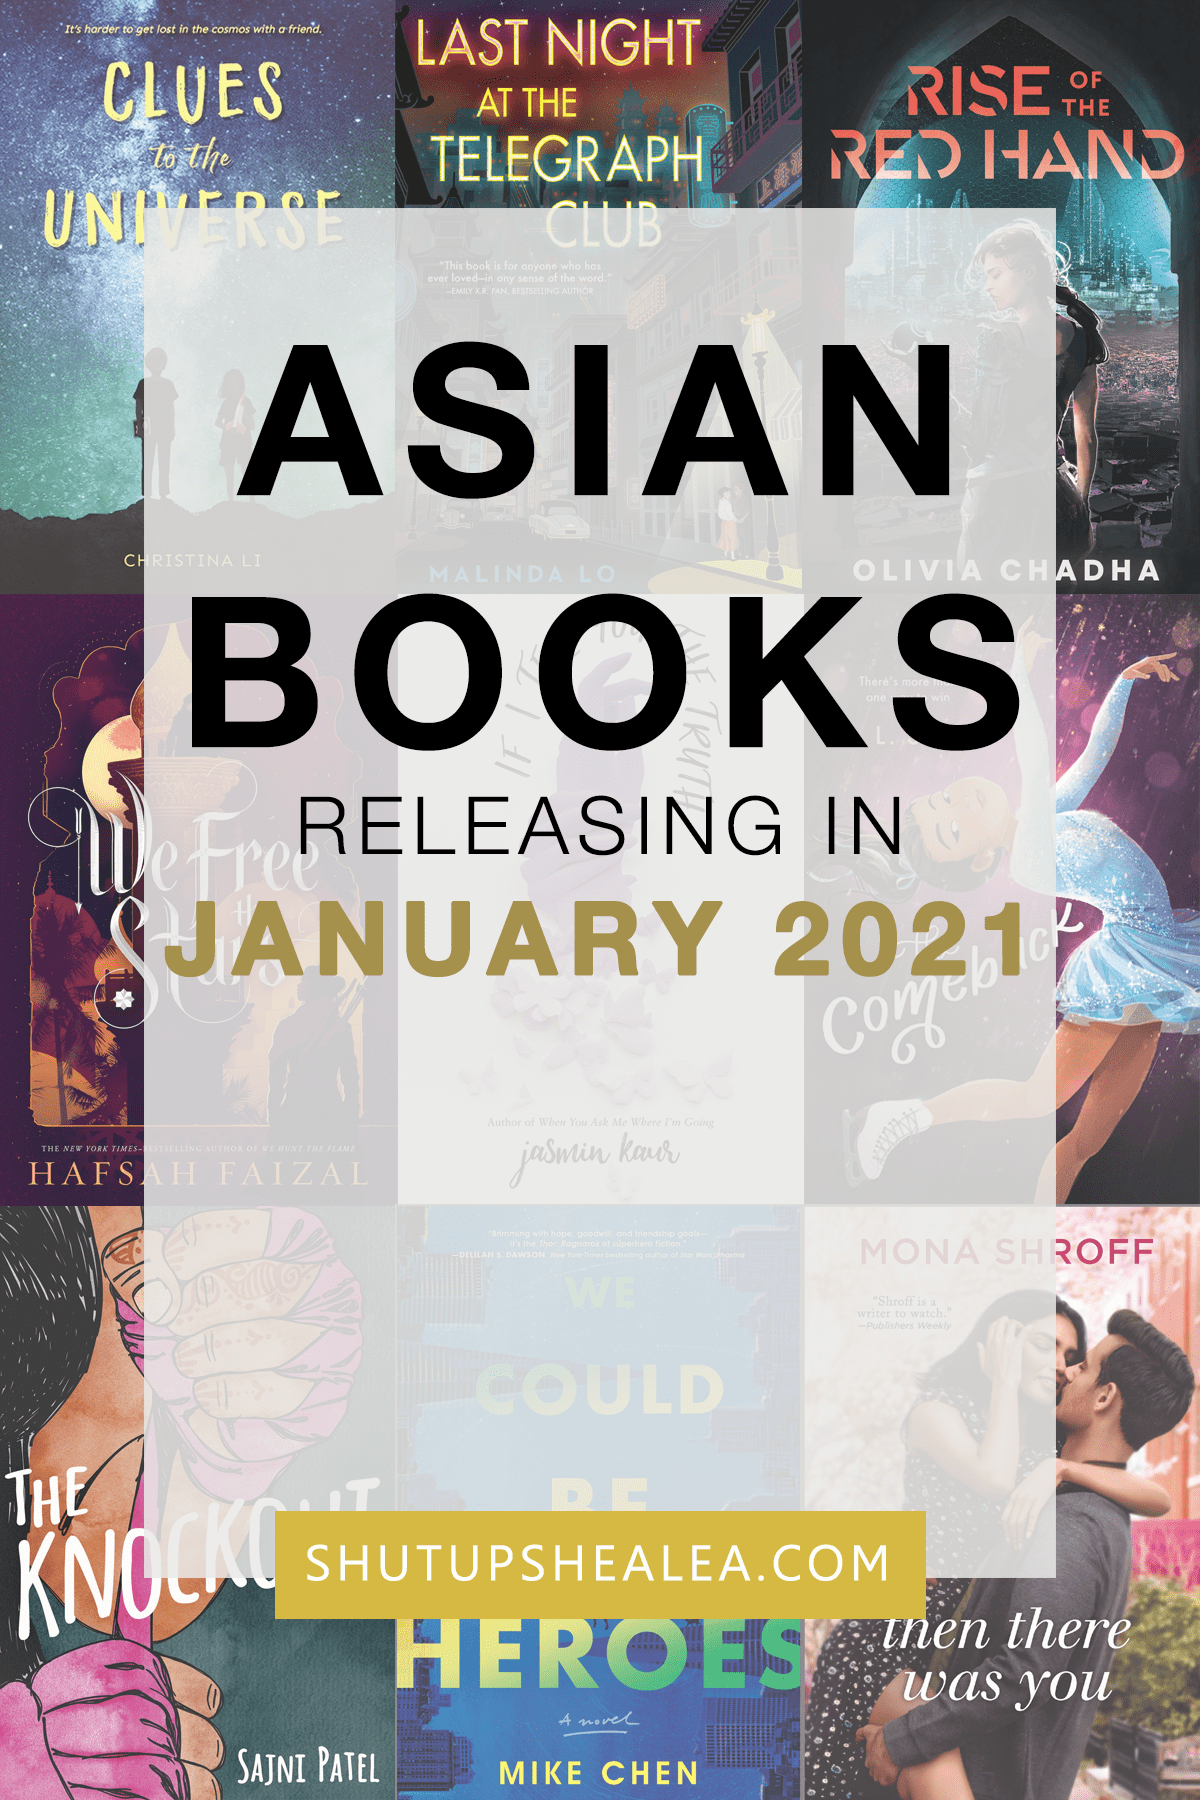 Books on the Rice: January 2021 releases from Asian authors